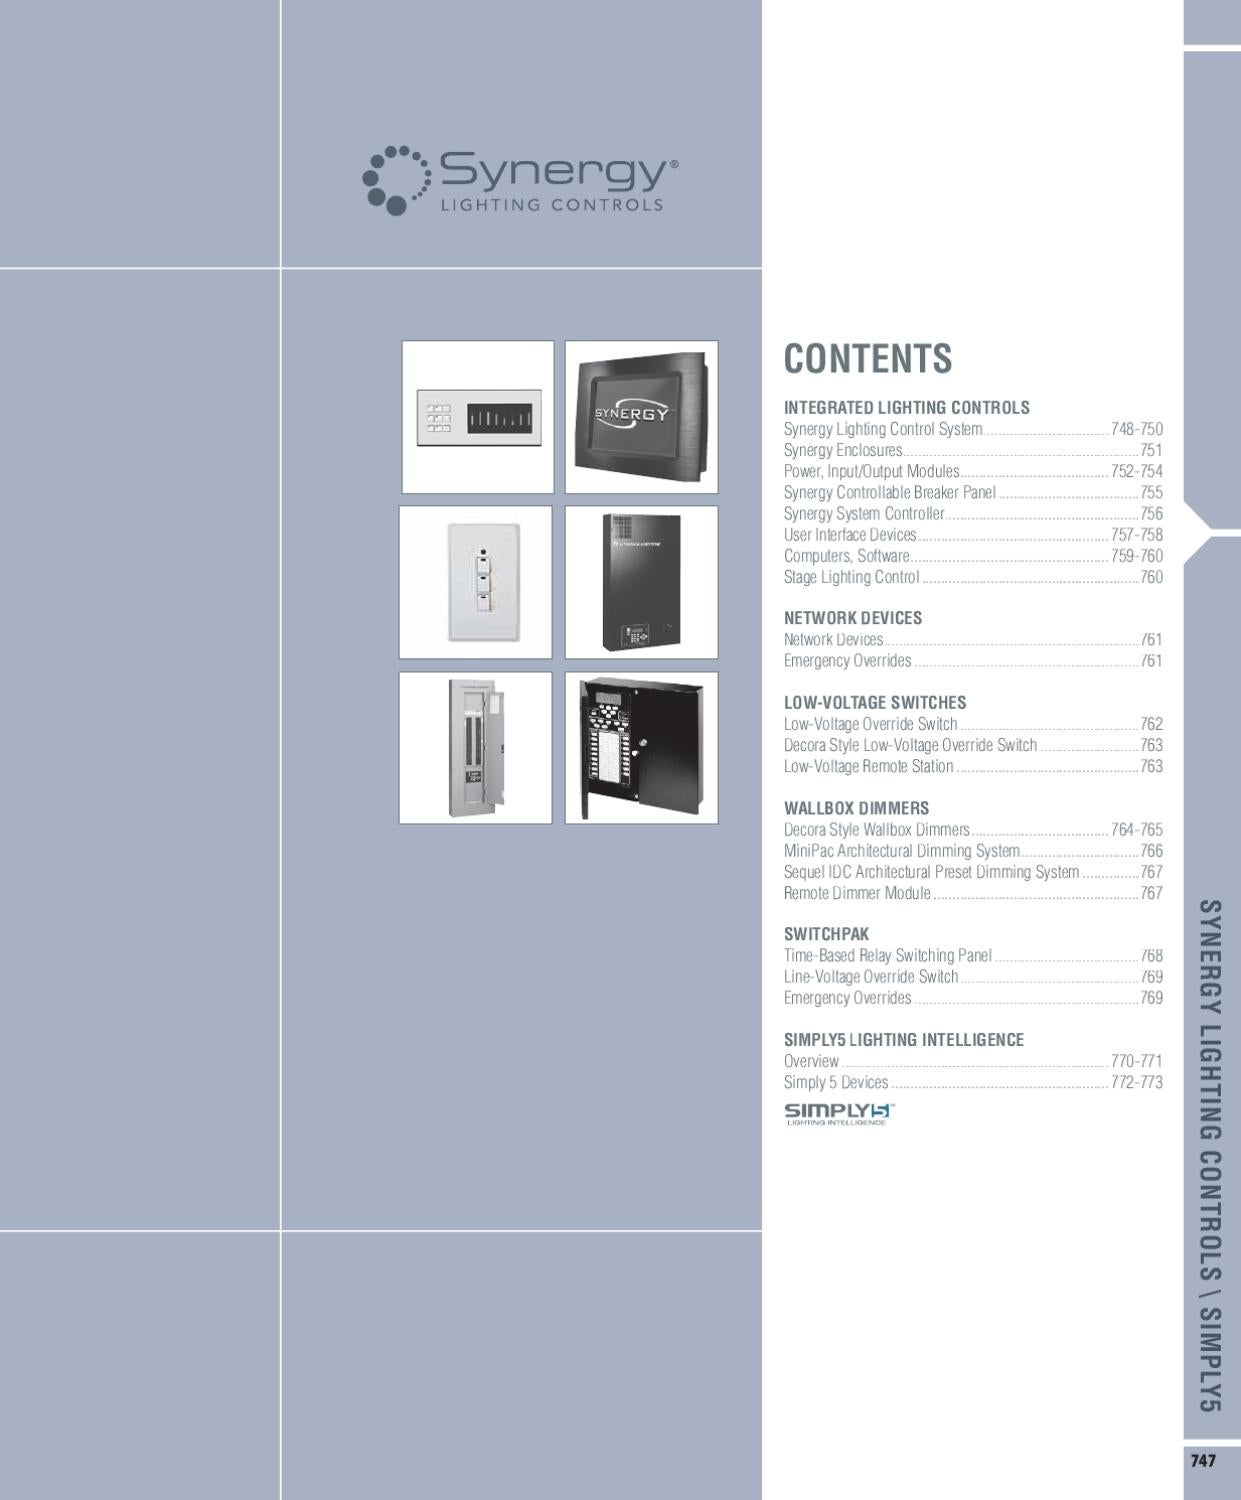 Synergy Lighting Controls Catalog By Alcon Issuu Additionally Light Ballast Wiring Diagram On 0 10v Dimming Led